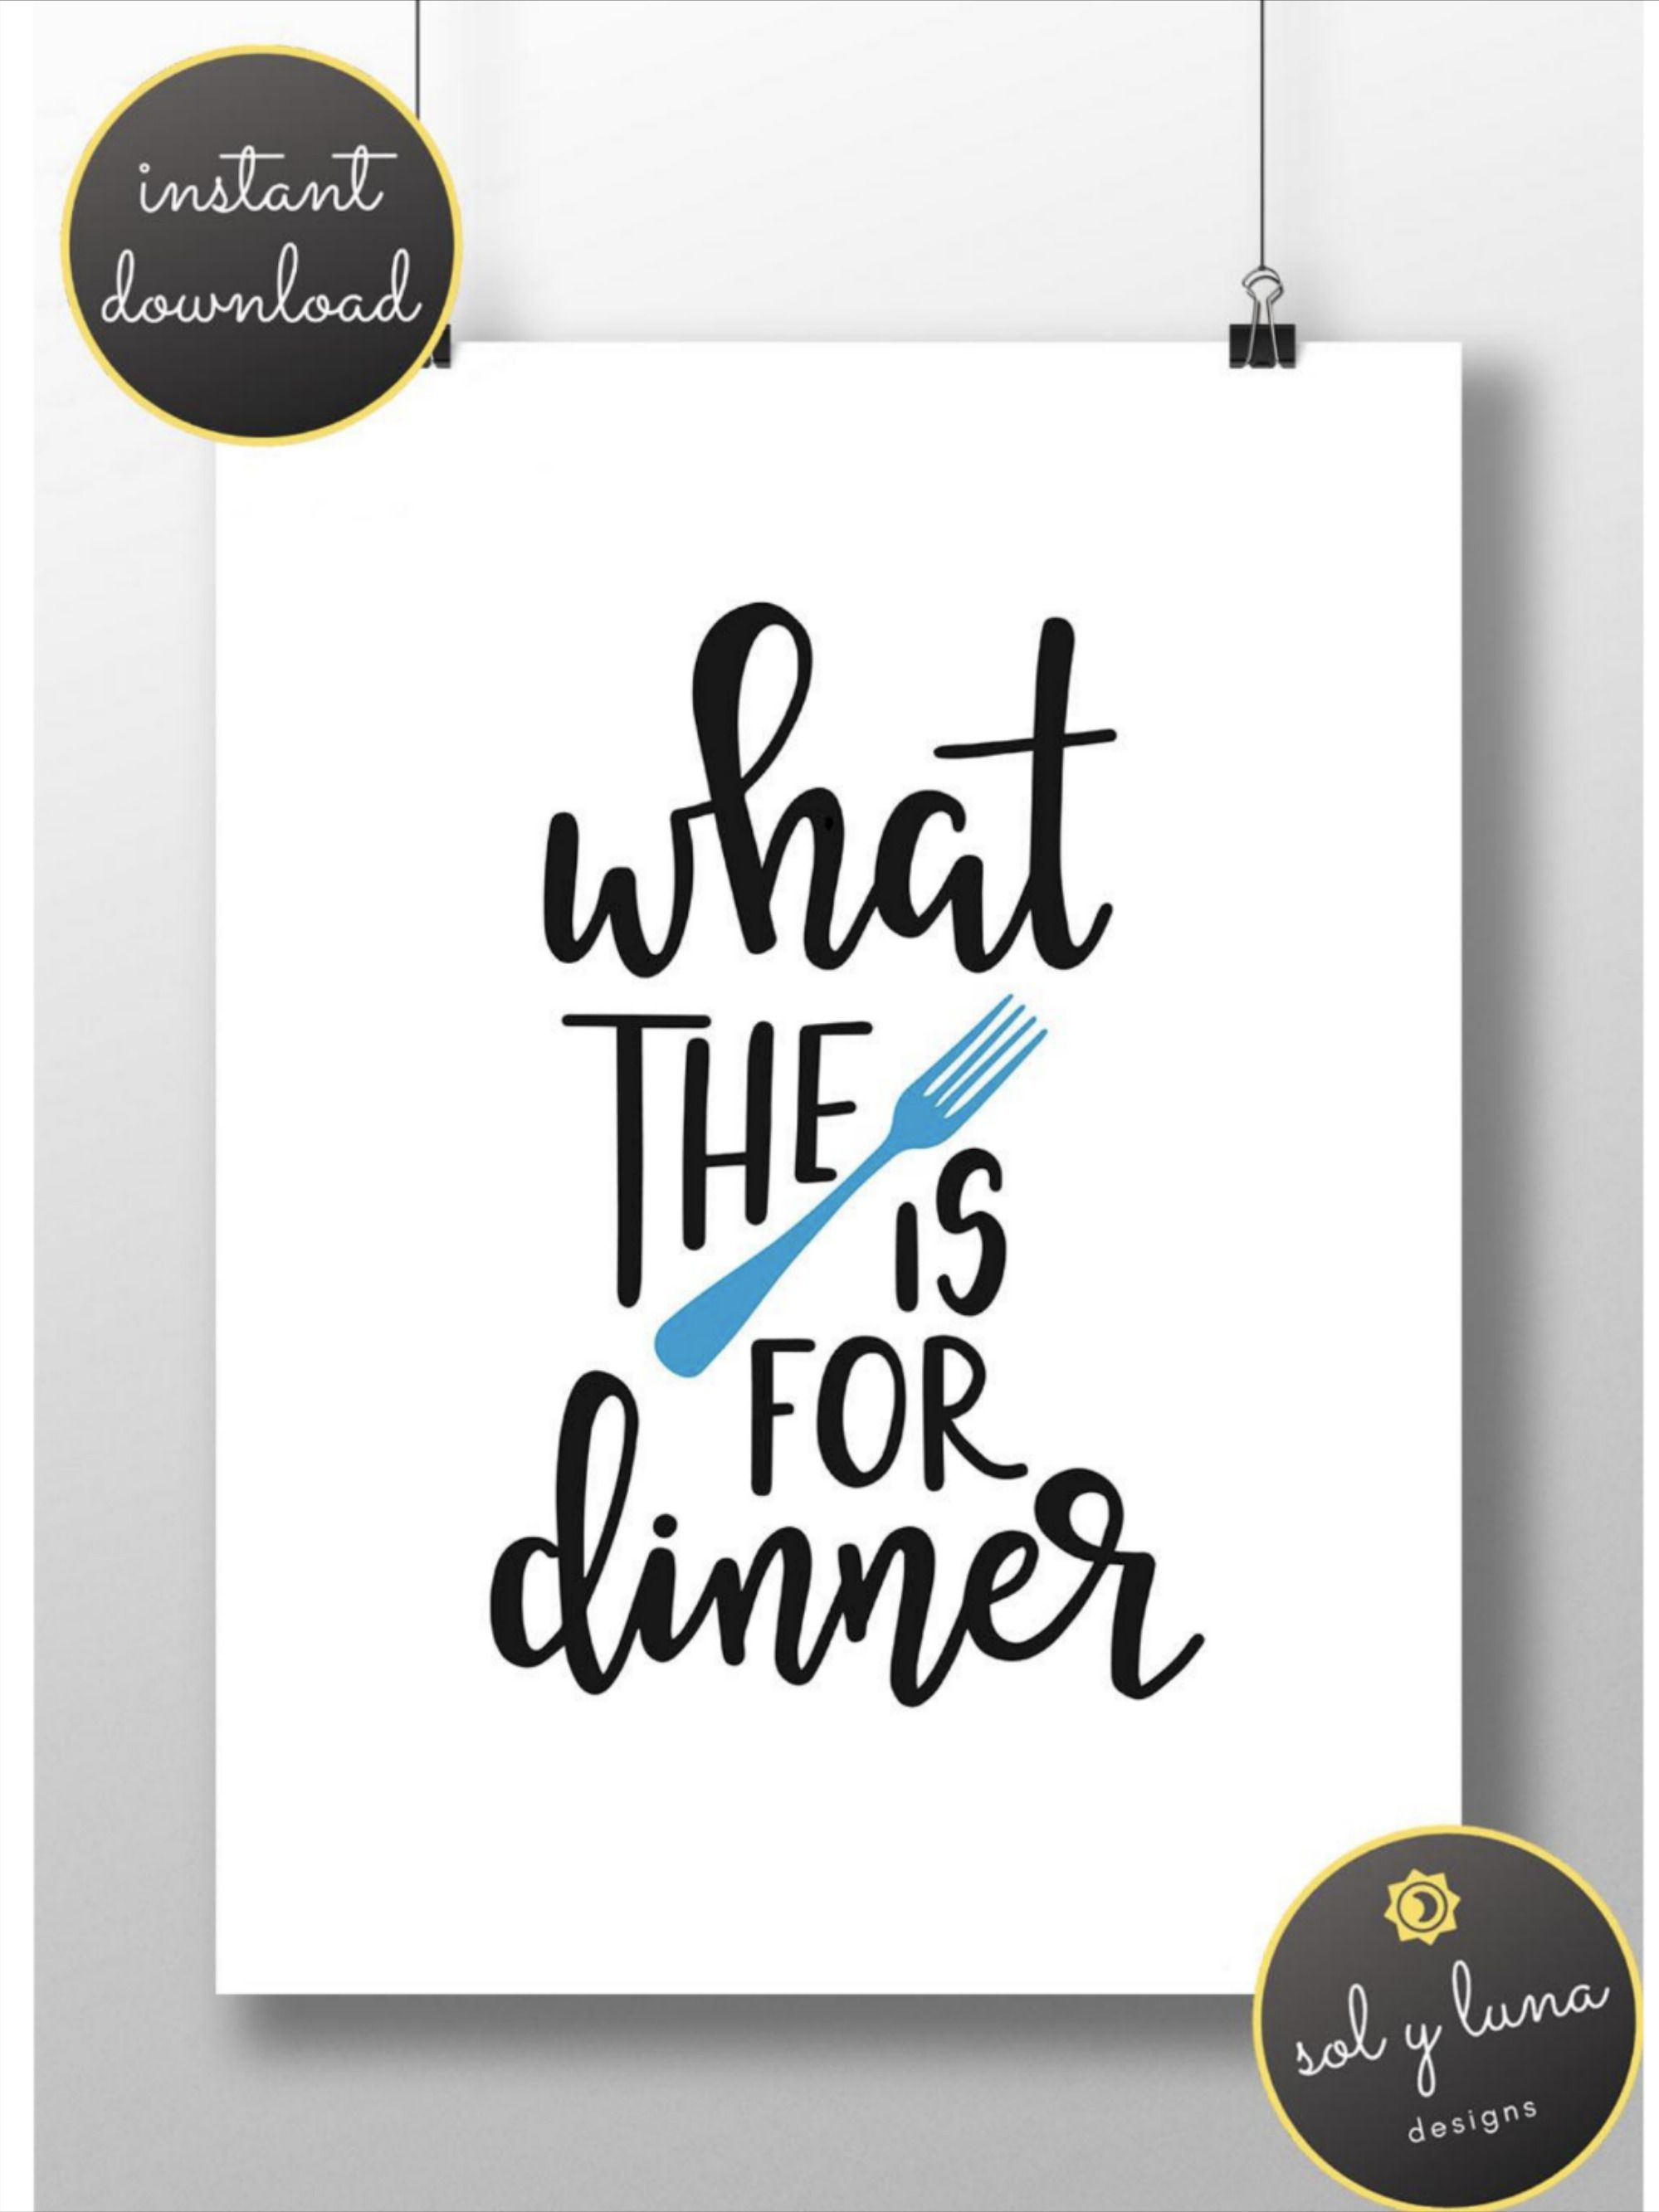 Funny Kitchen Wall Art Funny Kitchen Quotes Kitchen Quote Wall Decor Kitchen Wall Decor Kitchen Wall Art Wall Decor Quotes Kitchen Quotes Funny